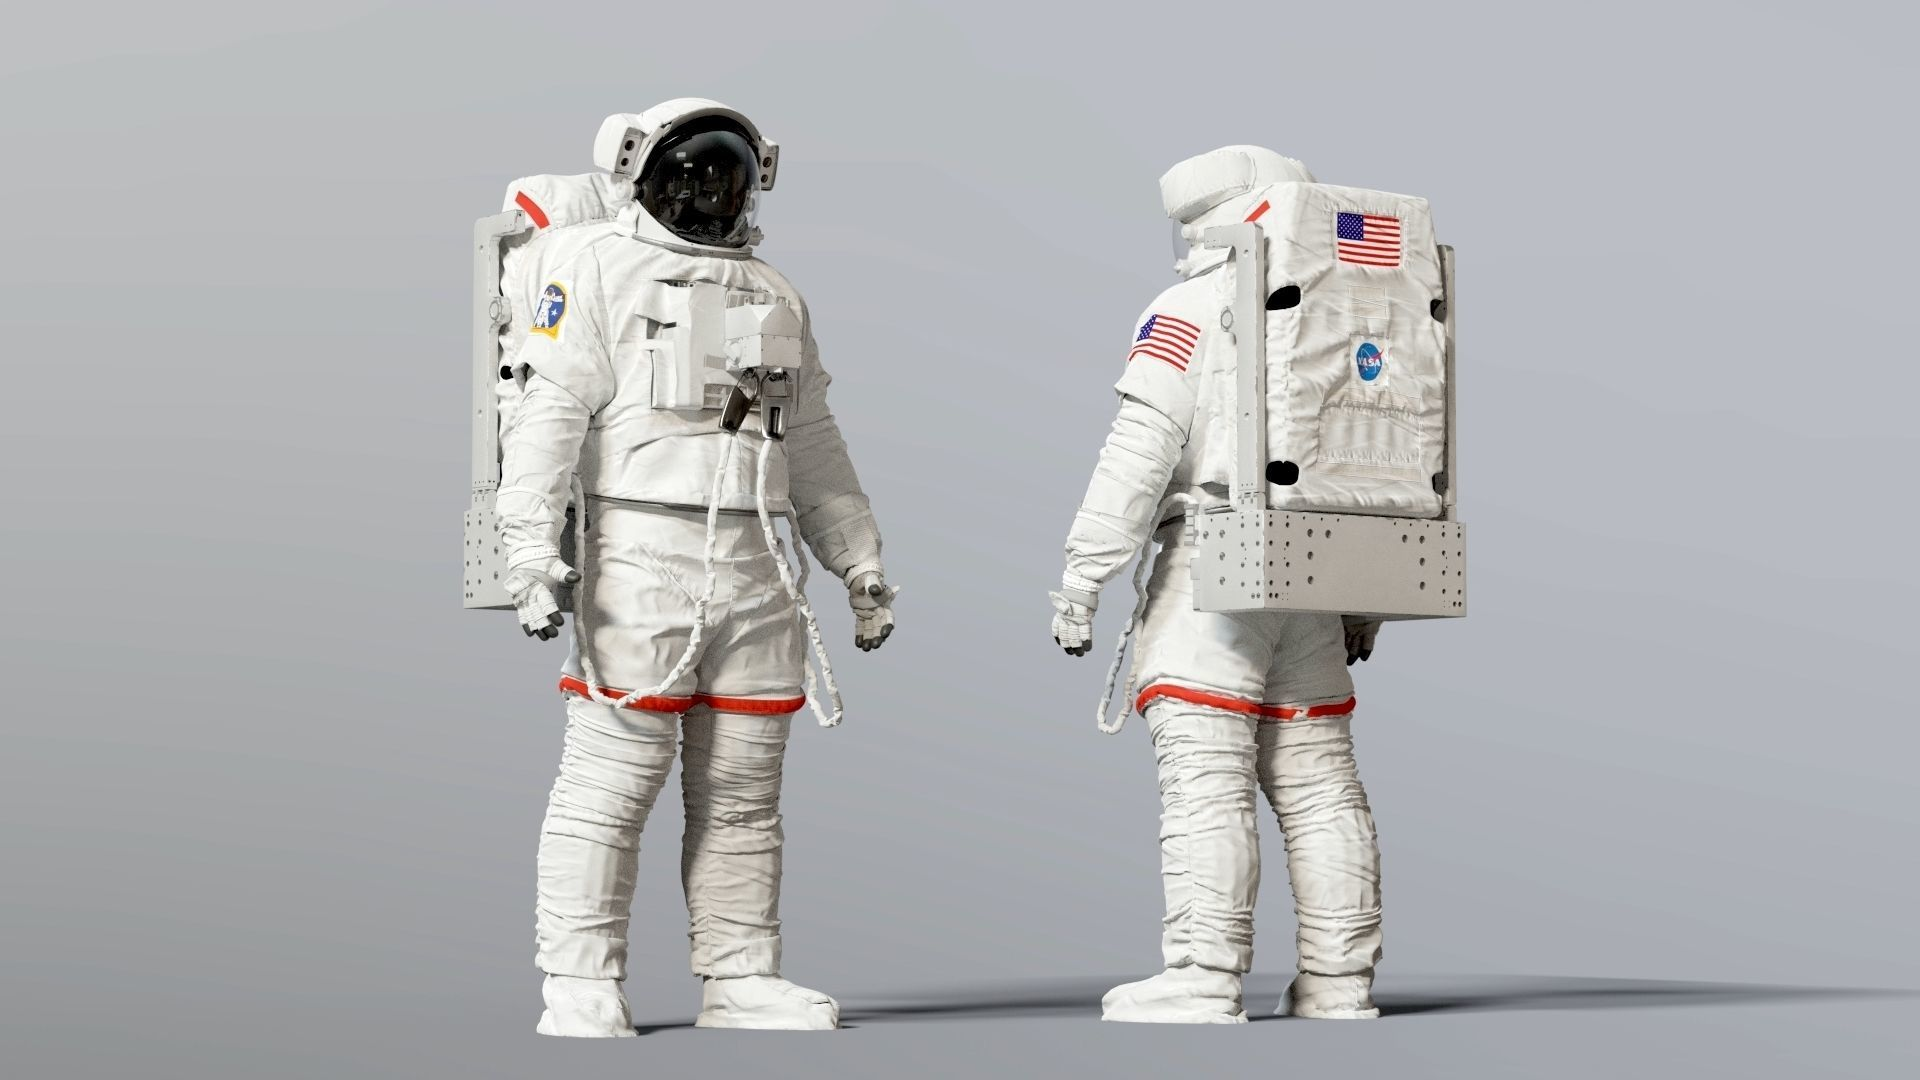 SPACESUIT NASA EMU SAFER